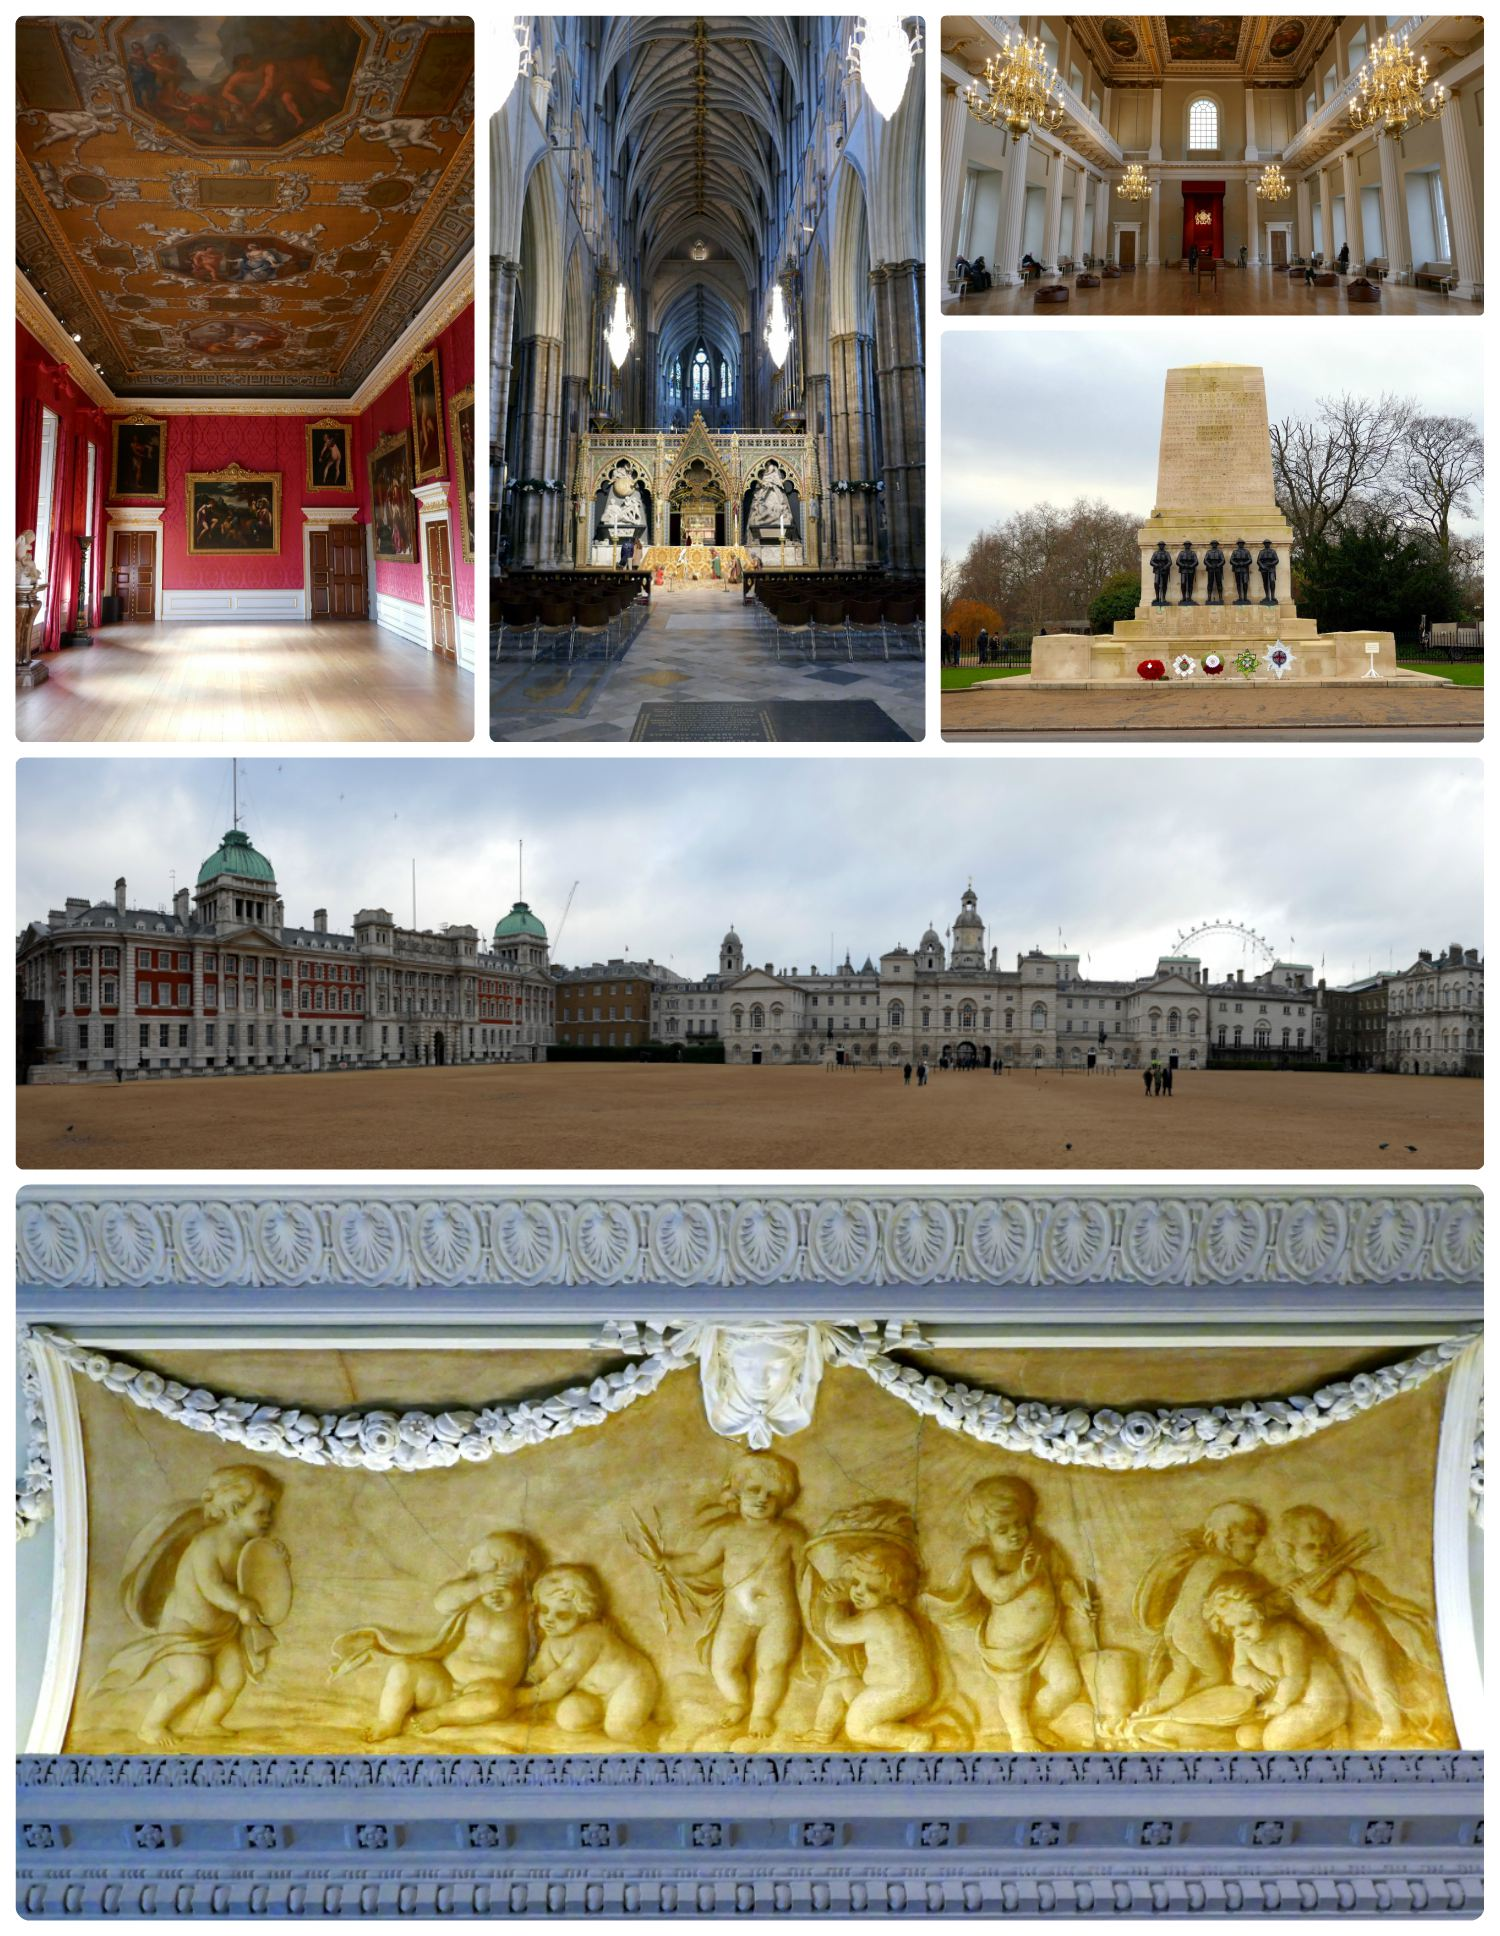 Sightseeing in London, United Kingdom. Top, left to right: Kensington Palace, Westminster Abbey, Banqueting House, War Memorial, Horse Guards Parade, Painting in one of the many museums